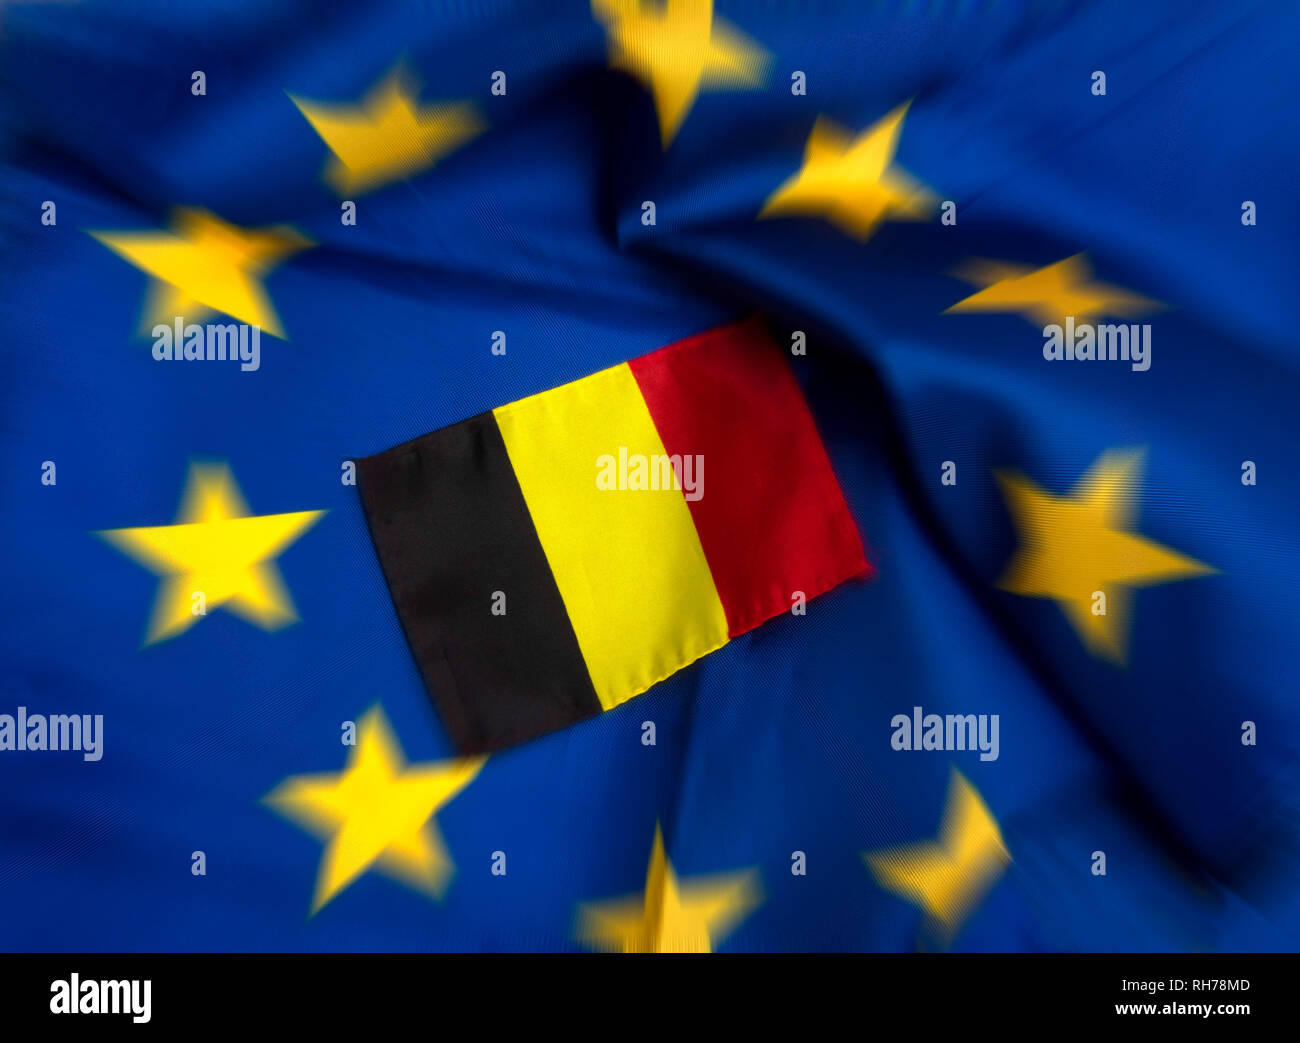 Flags of European Union and Belgium - Stock Image